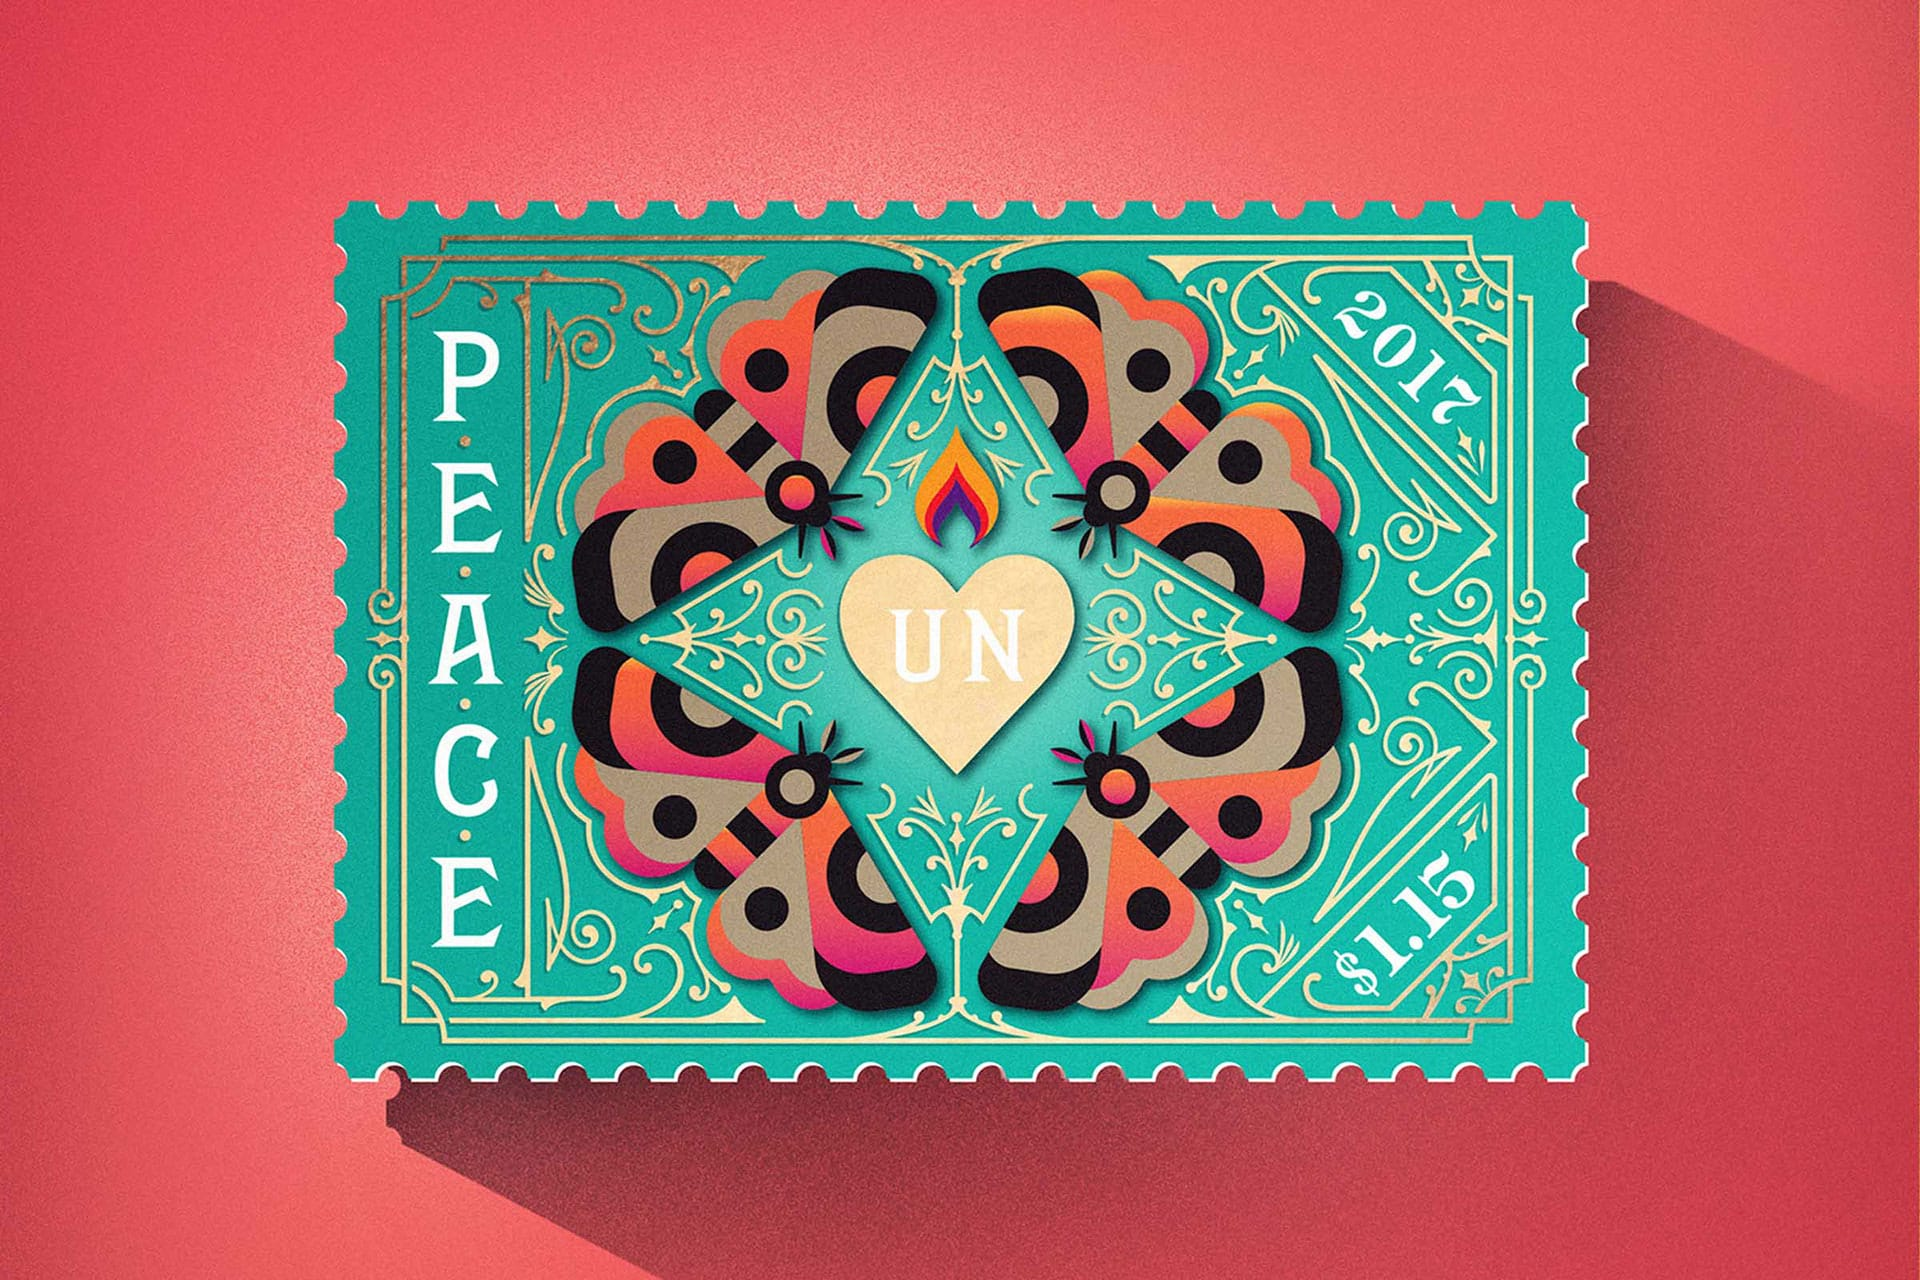 2018 graphic design print design trends maximalism maximalist UN peace stamps